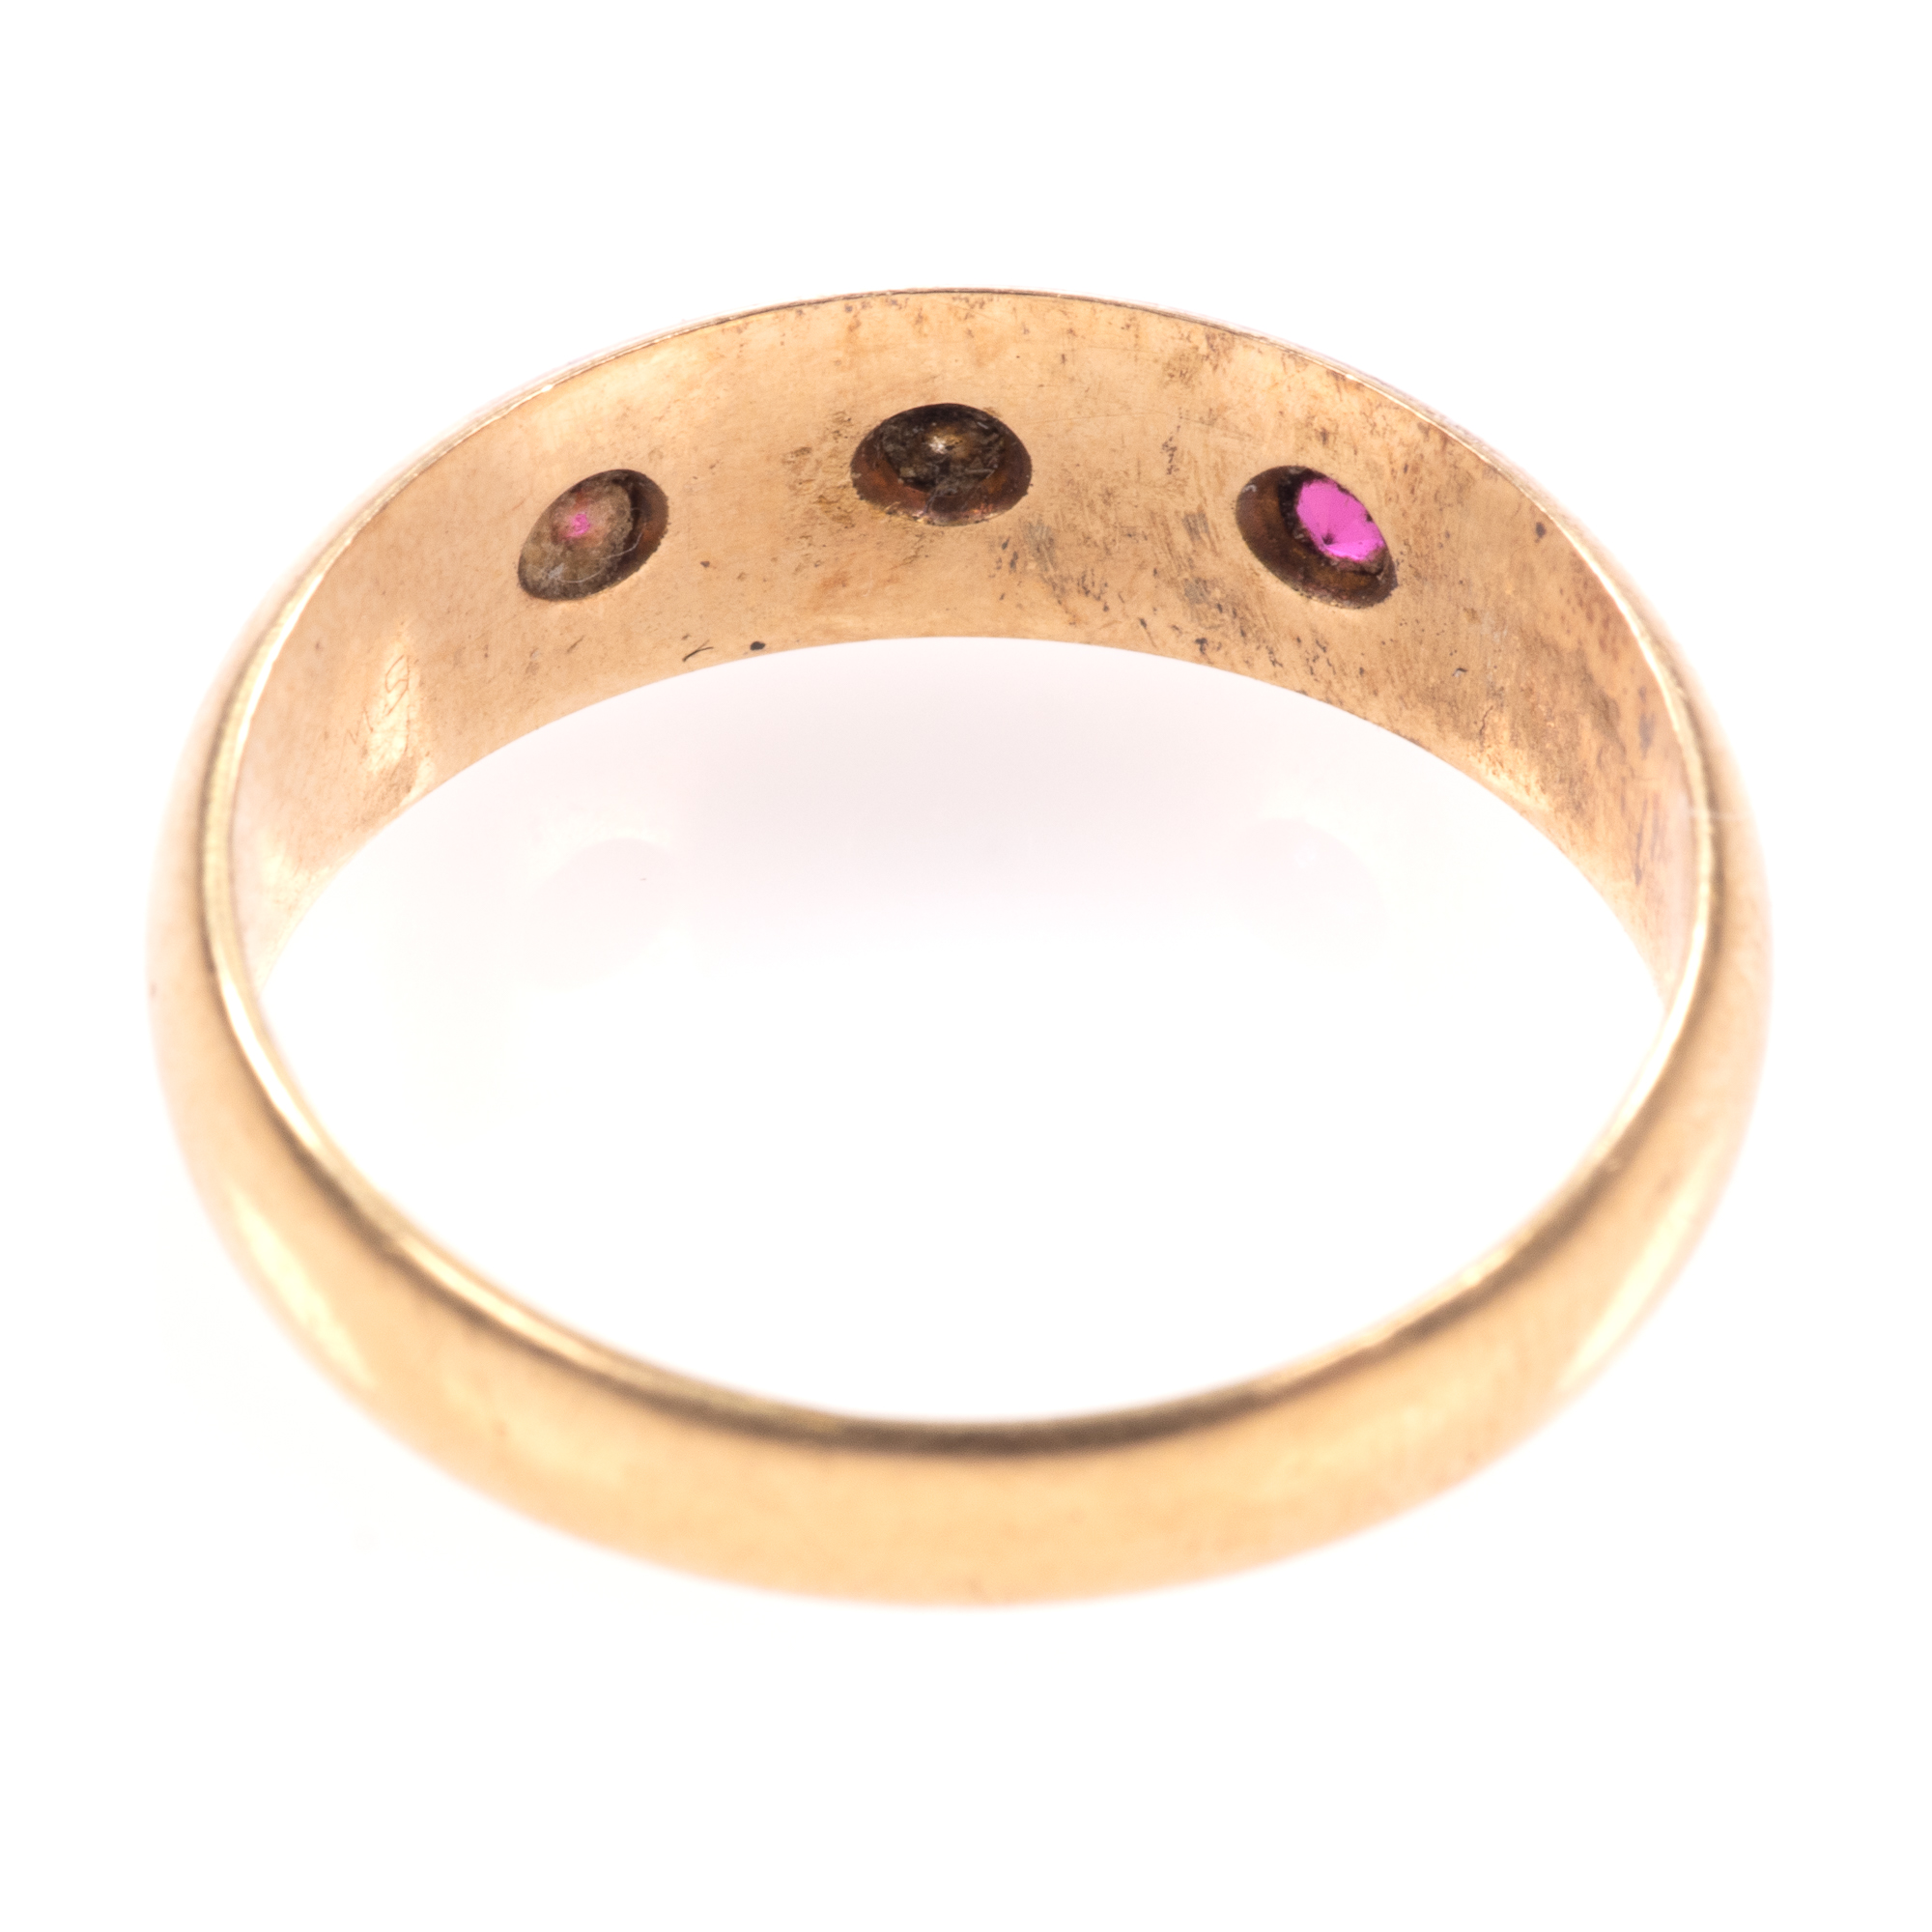 18ct Gold Edwardian Ruby & Diamond Ring Chester 1909 - Image 6 of 8